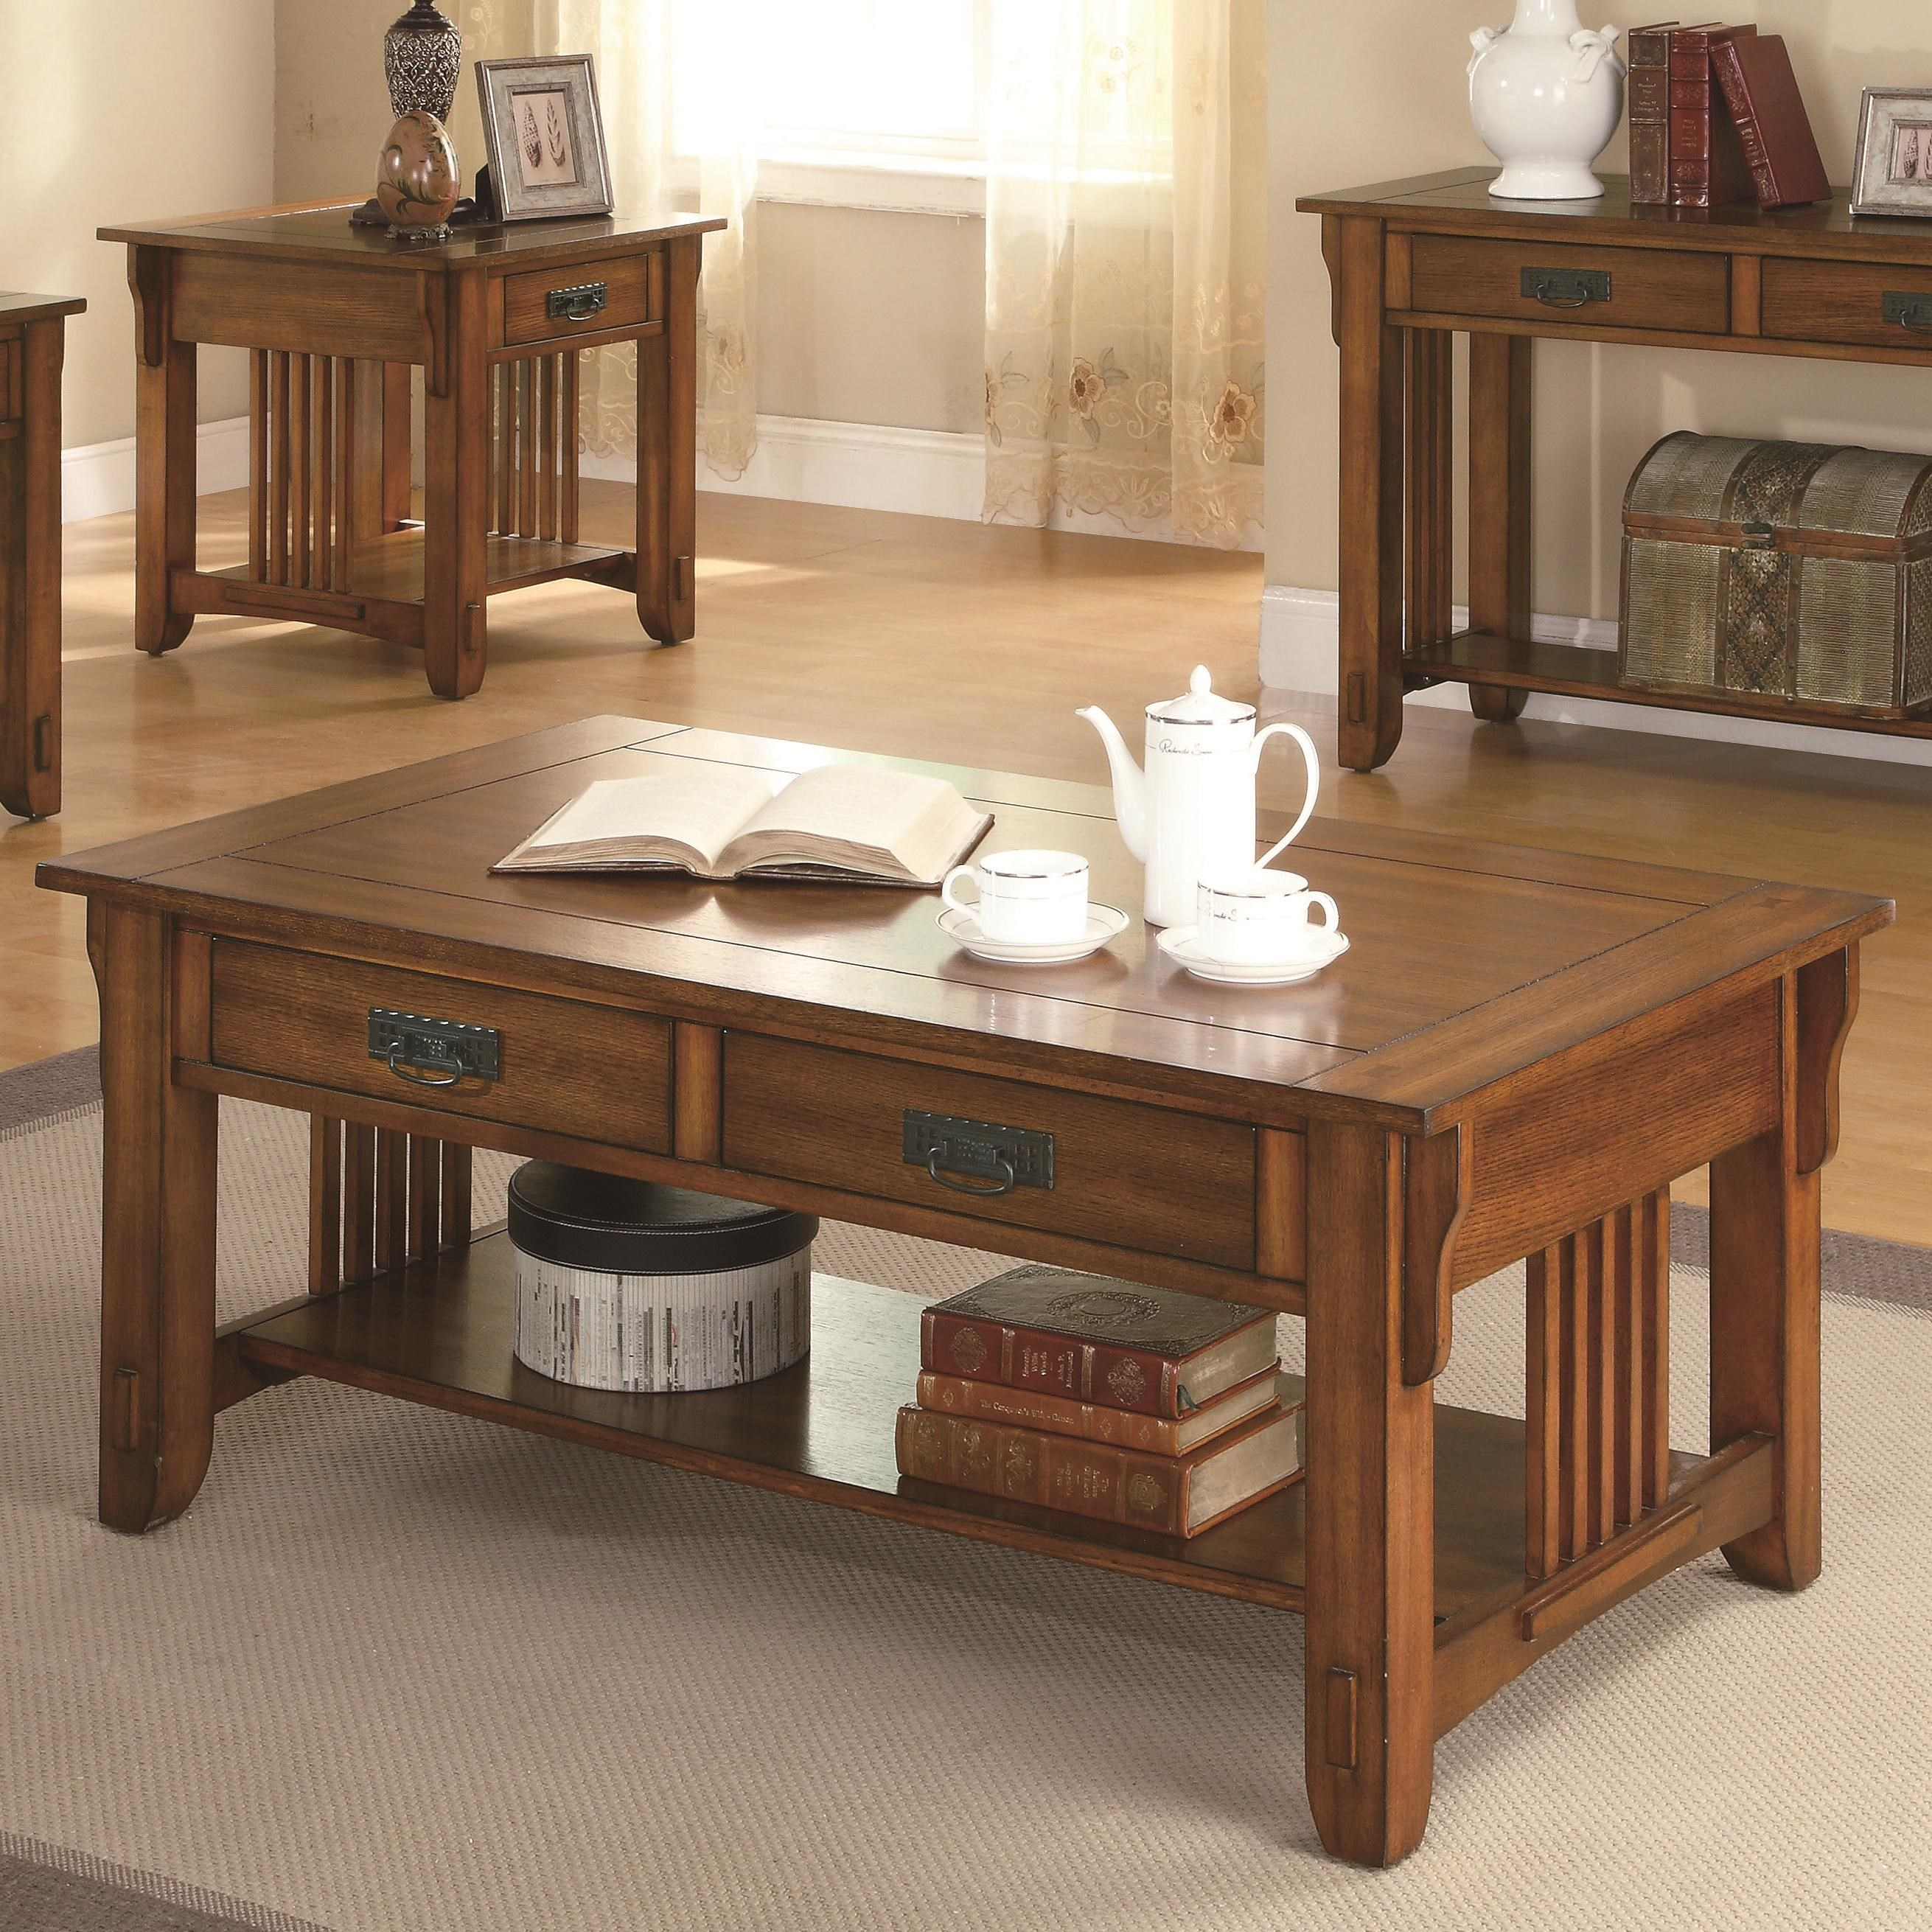 Beautiful Coffee Table Occasional Group 2 Drawer Coffee Table With Shelf By Coaster At Northeast Factory Direct